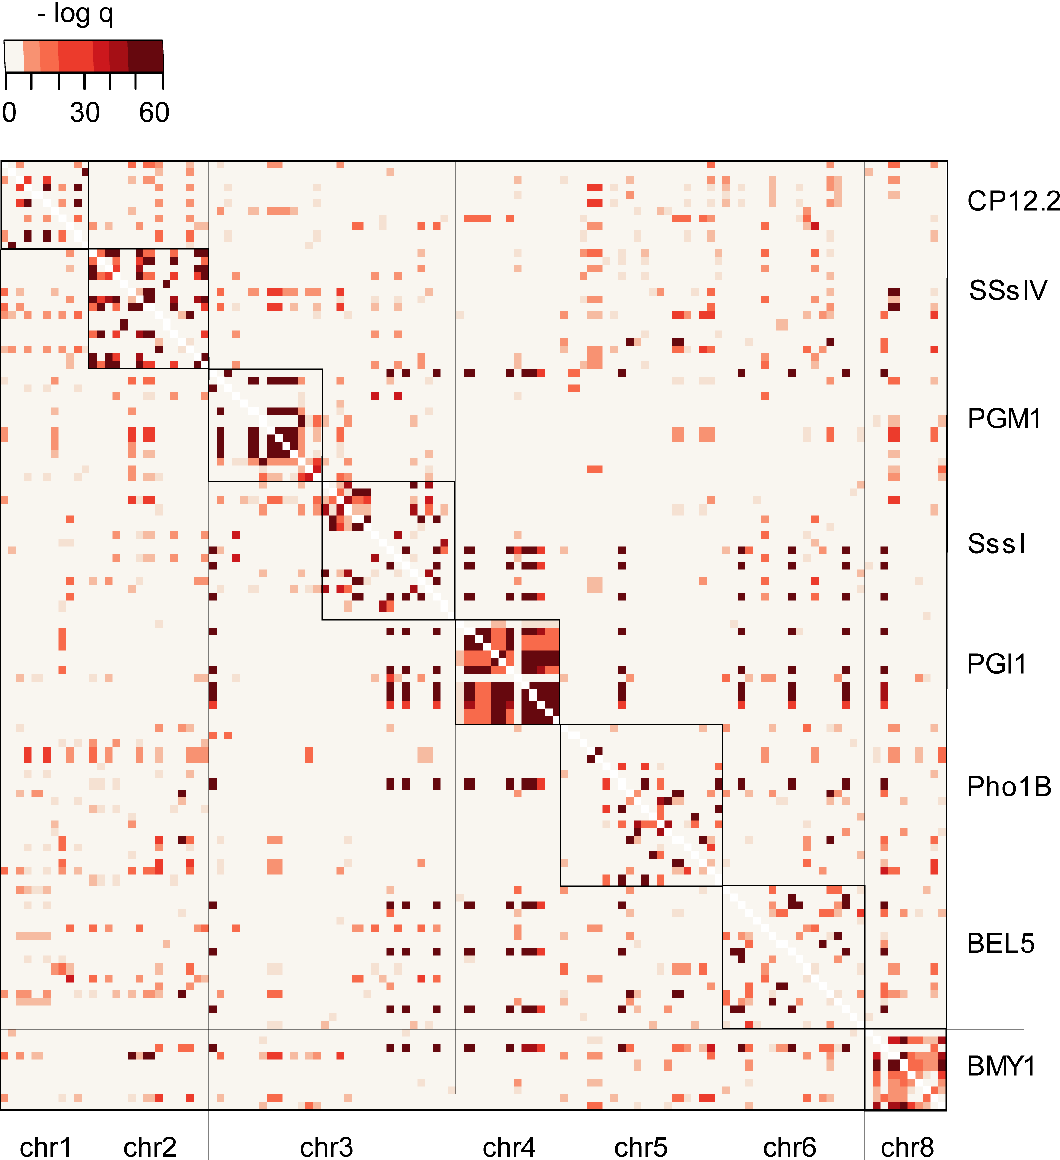 Figure 2.8.: Linkage disequilibrium between pairs of SNPs in candidate genes. Displayed are -log q-values. Each row and line corresponds to one SNP position. Loci are framed with black boxes